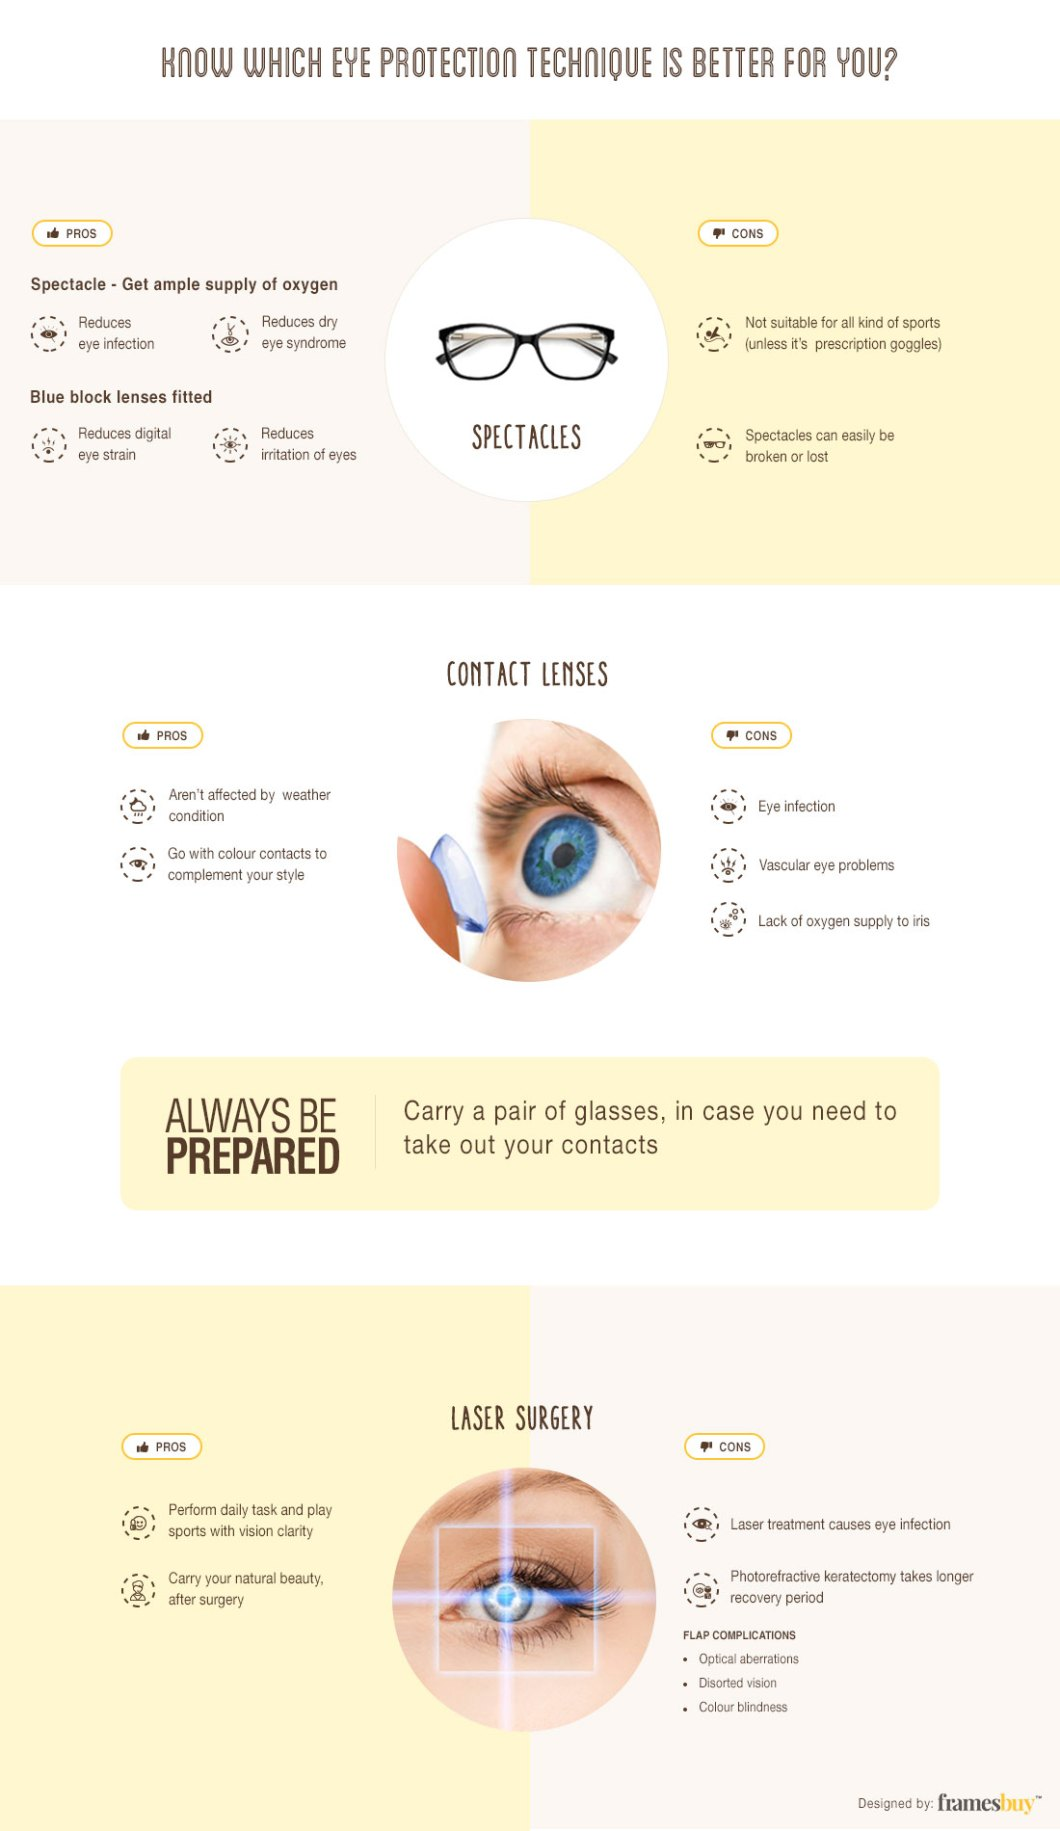 Pros and Cons of Different Vision Correction and Eye Protection Options - Infographic